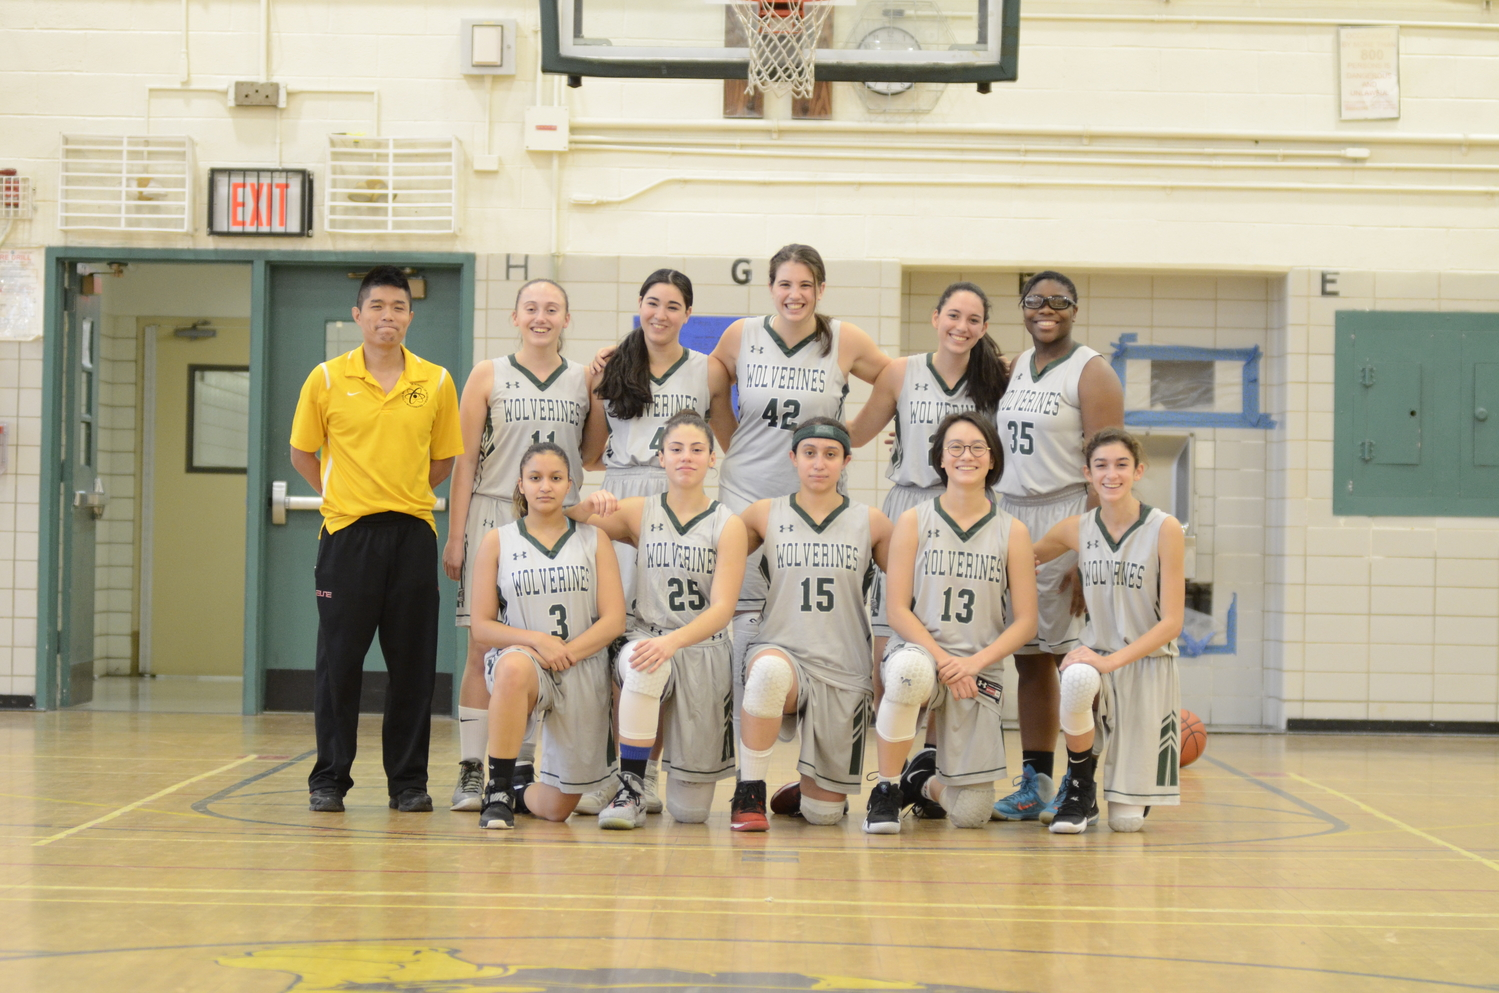 Members of the Girls' Varsity Basketball team are well aware of the impact that sports can have upon how athletes view themselves.